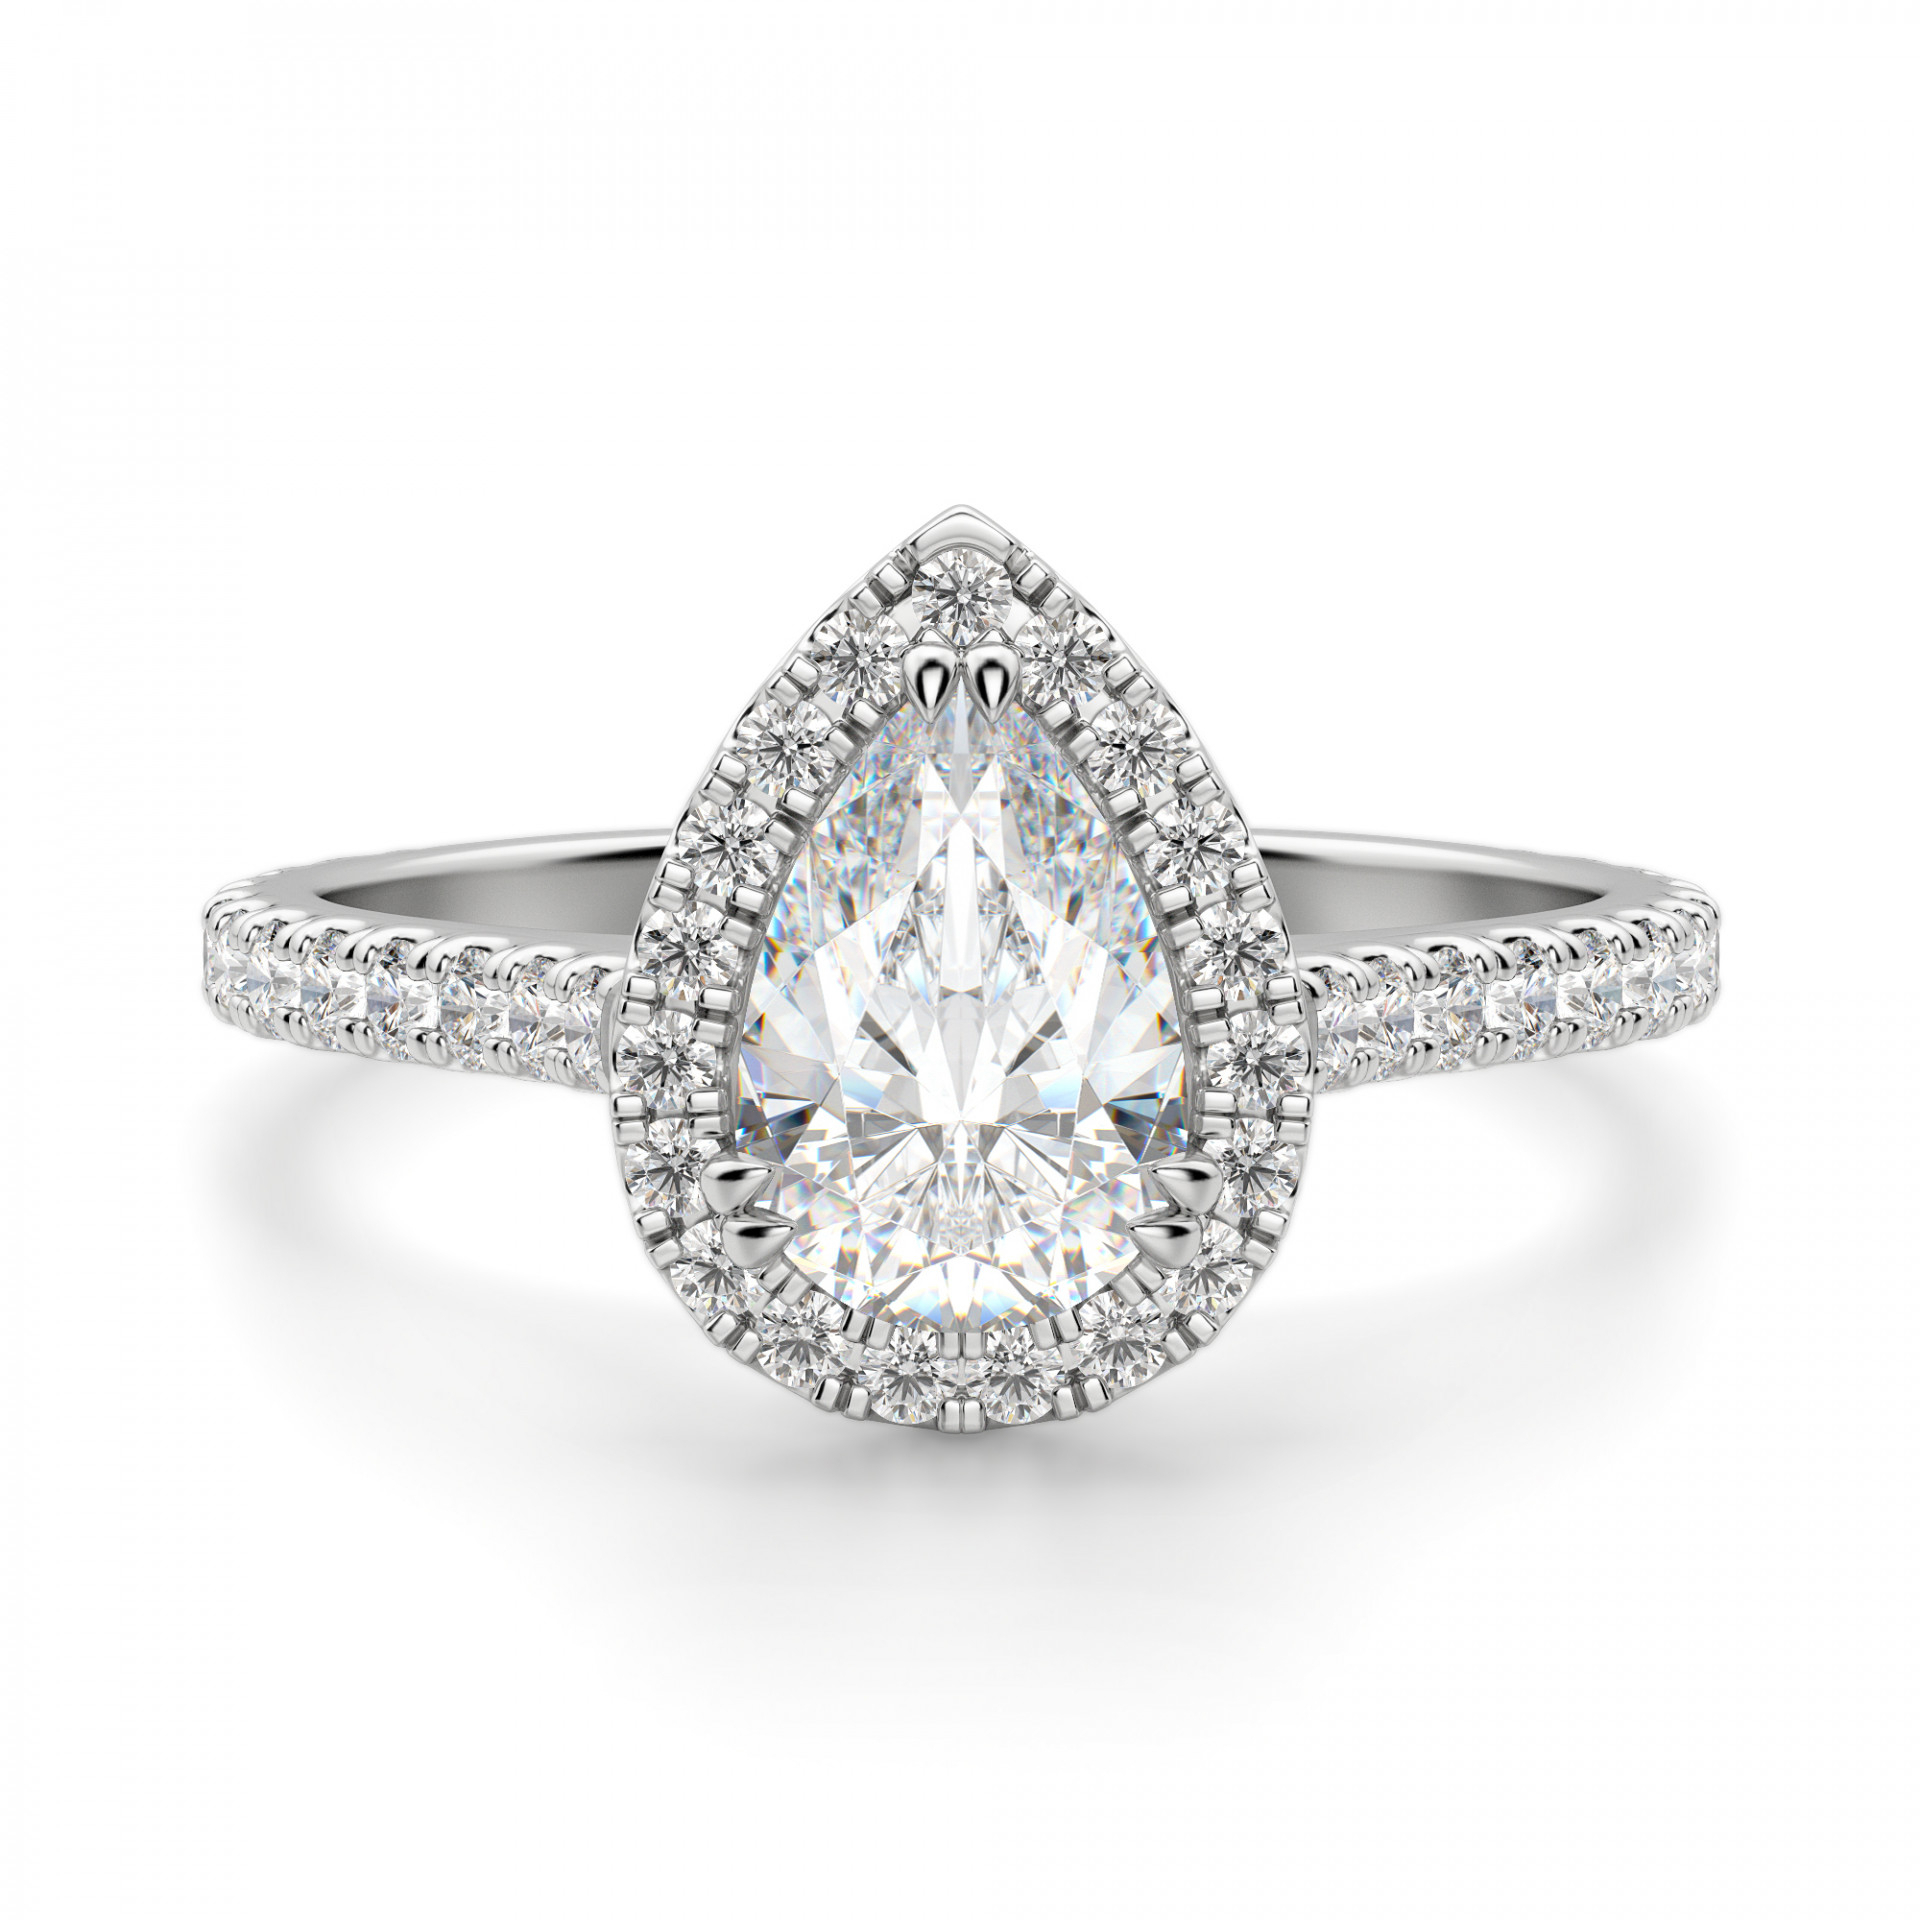 Prague Pear Cut Engagement Ring In Pear Shaped Engagement Rings (View 22 of 25)